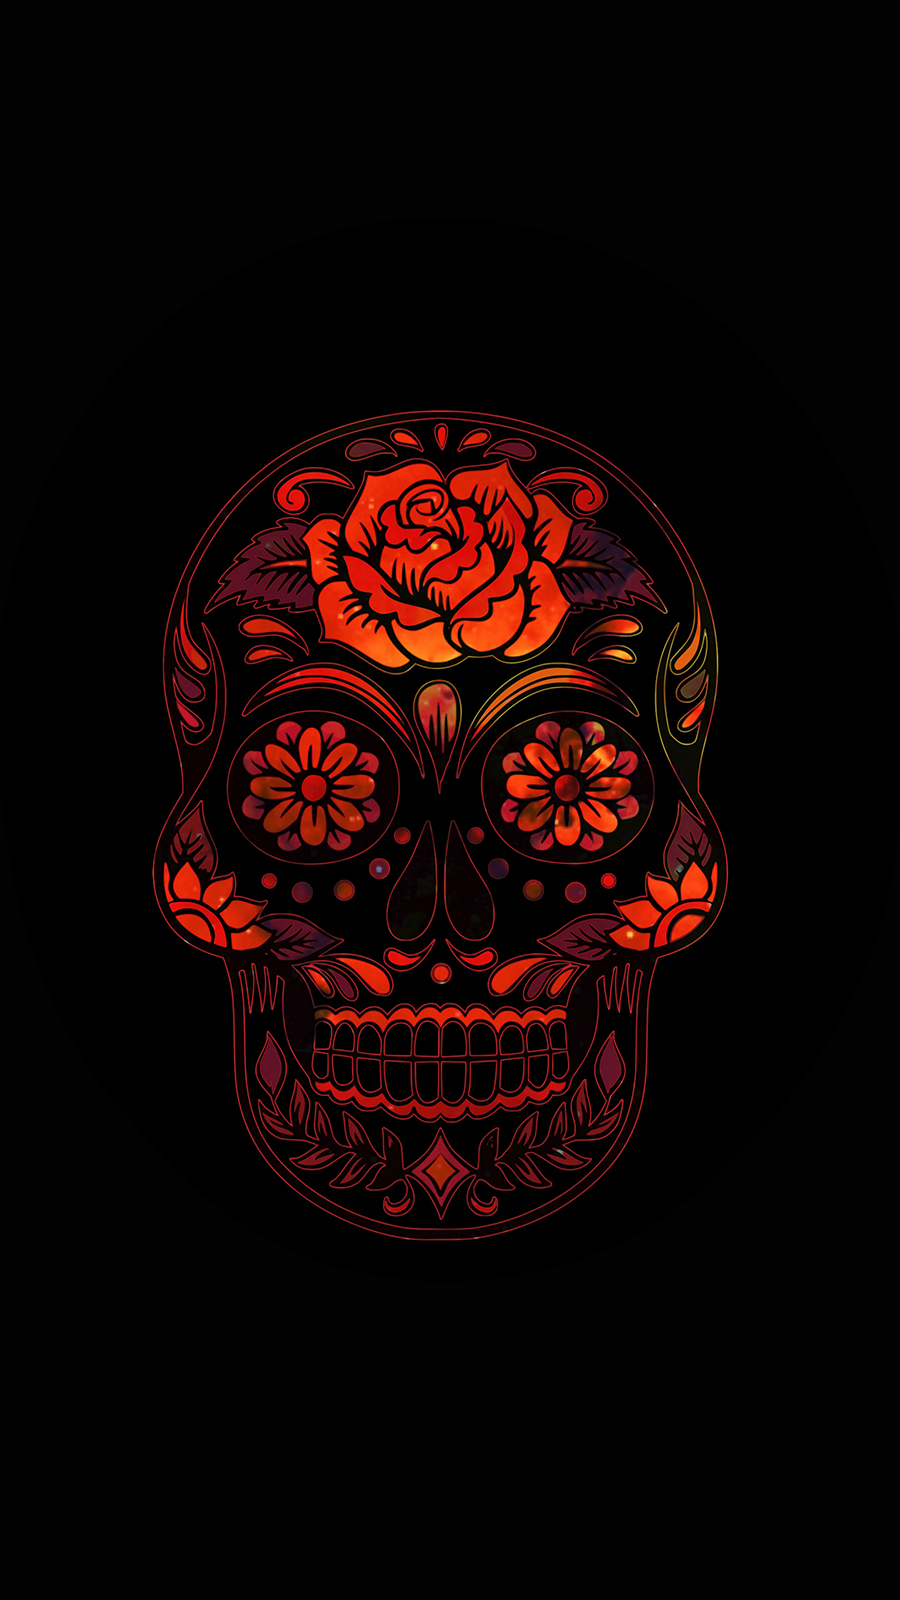 Skull Wallpapers For Mobile Download